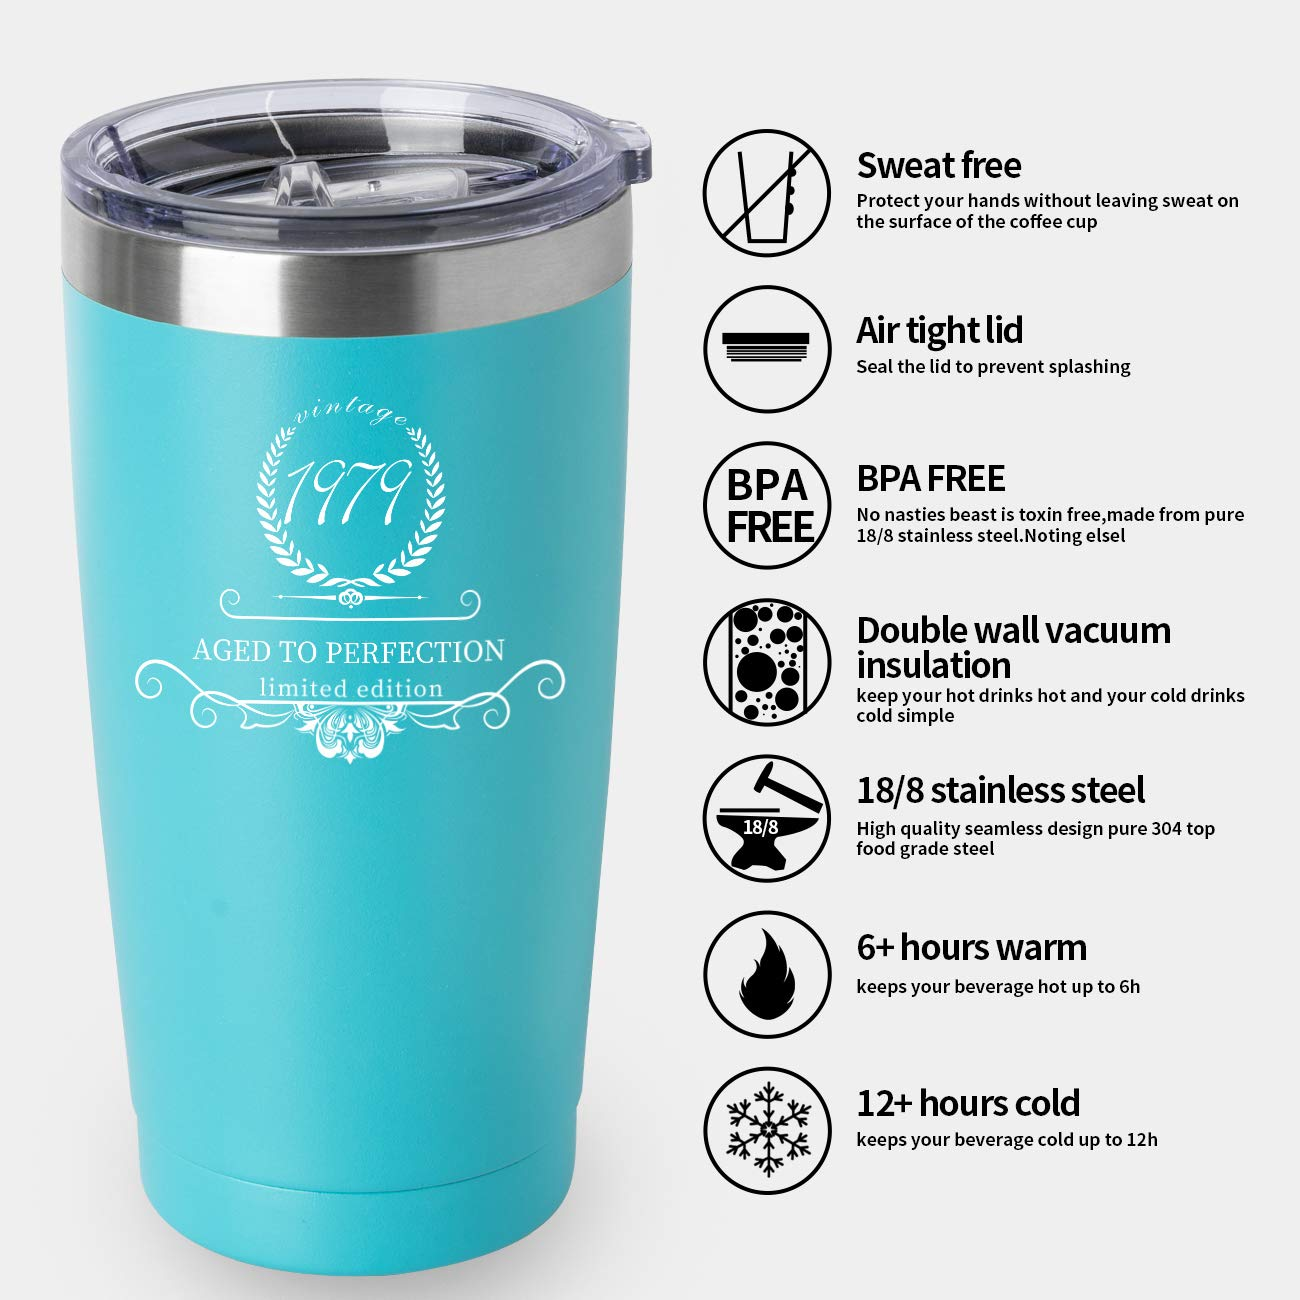 20oz Stainless Steel Tumbler Best Anniversary Presents Ideas Him Her Husband Wife Mom Dad 1949 70th Birthday Gifts for Women and Men Tumbler Black, 1949 Party 70th birthday decorations